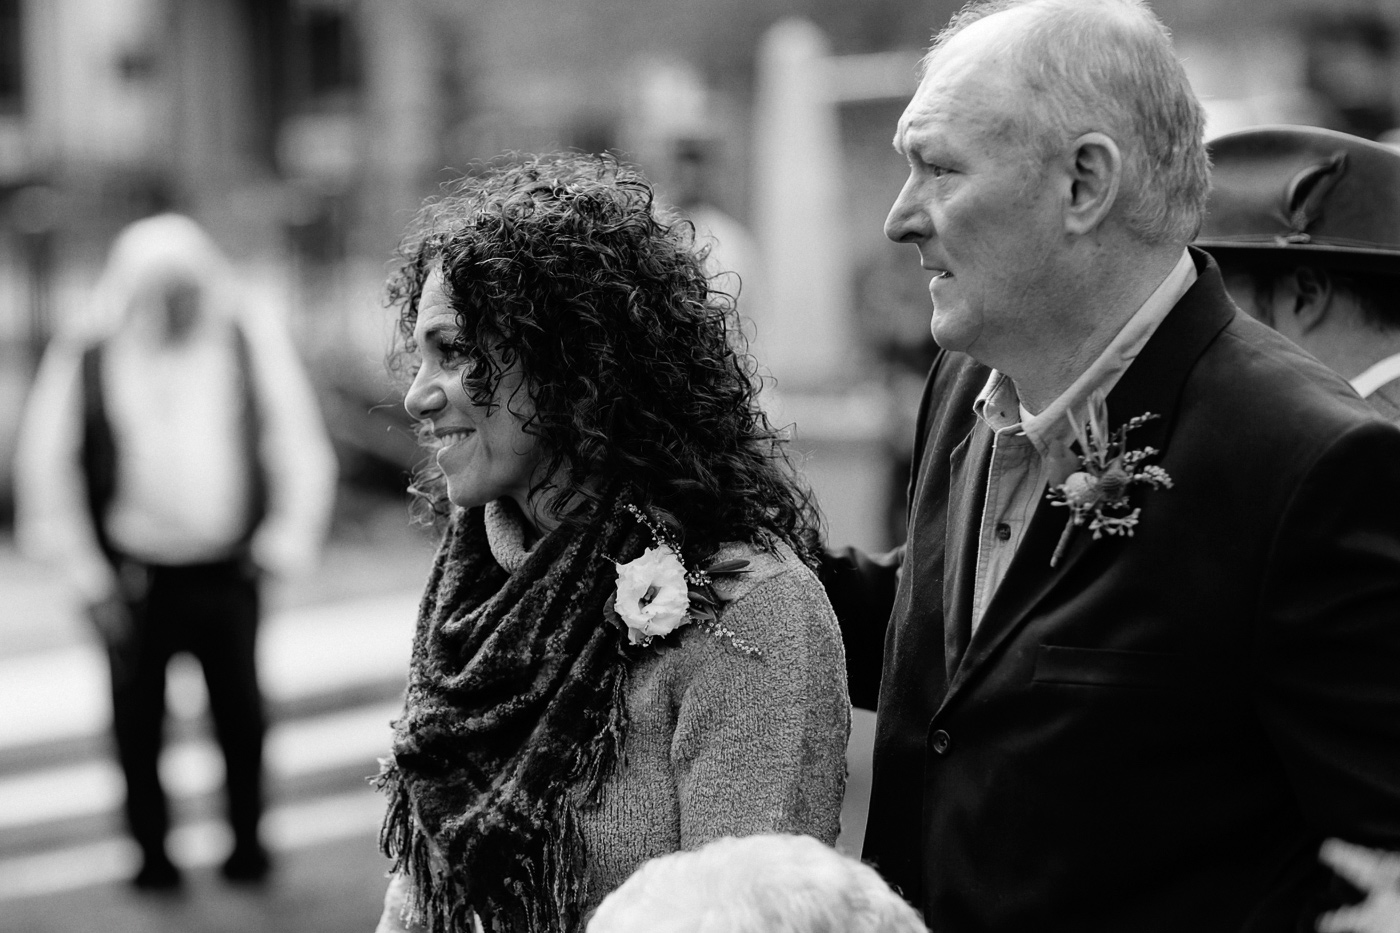 Parents smiling during ceremony